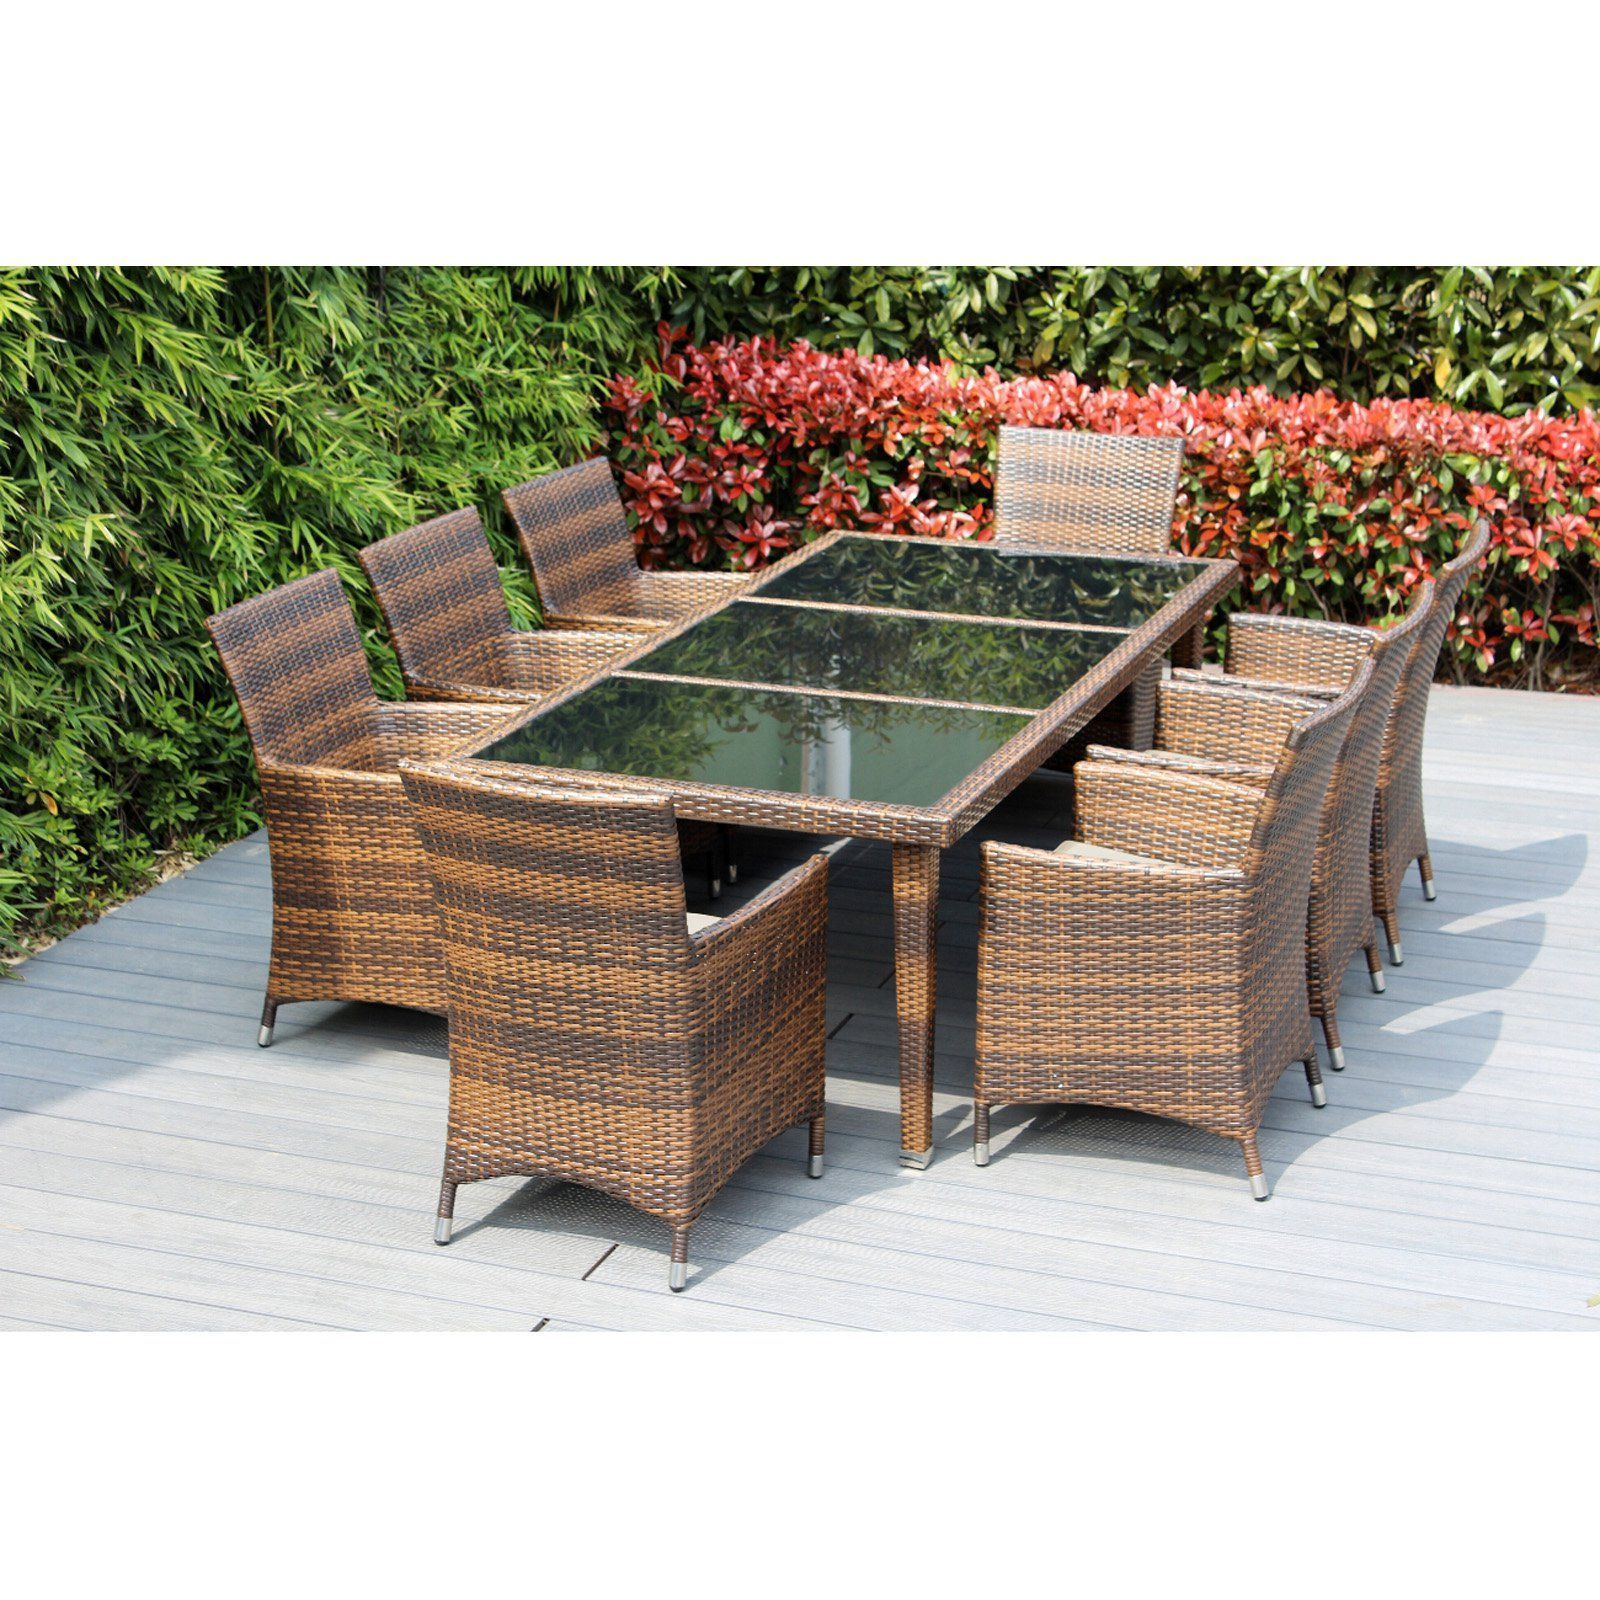 Outdoor Ohana All Weather Wicker 9 Piece Patio Dining Table Set